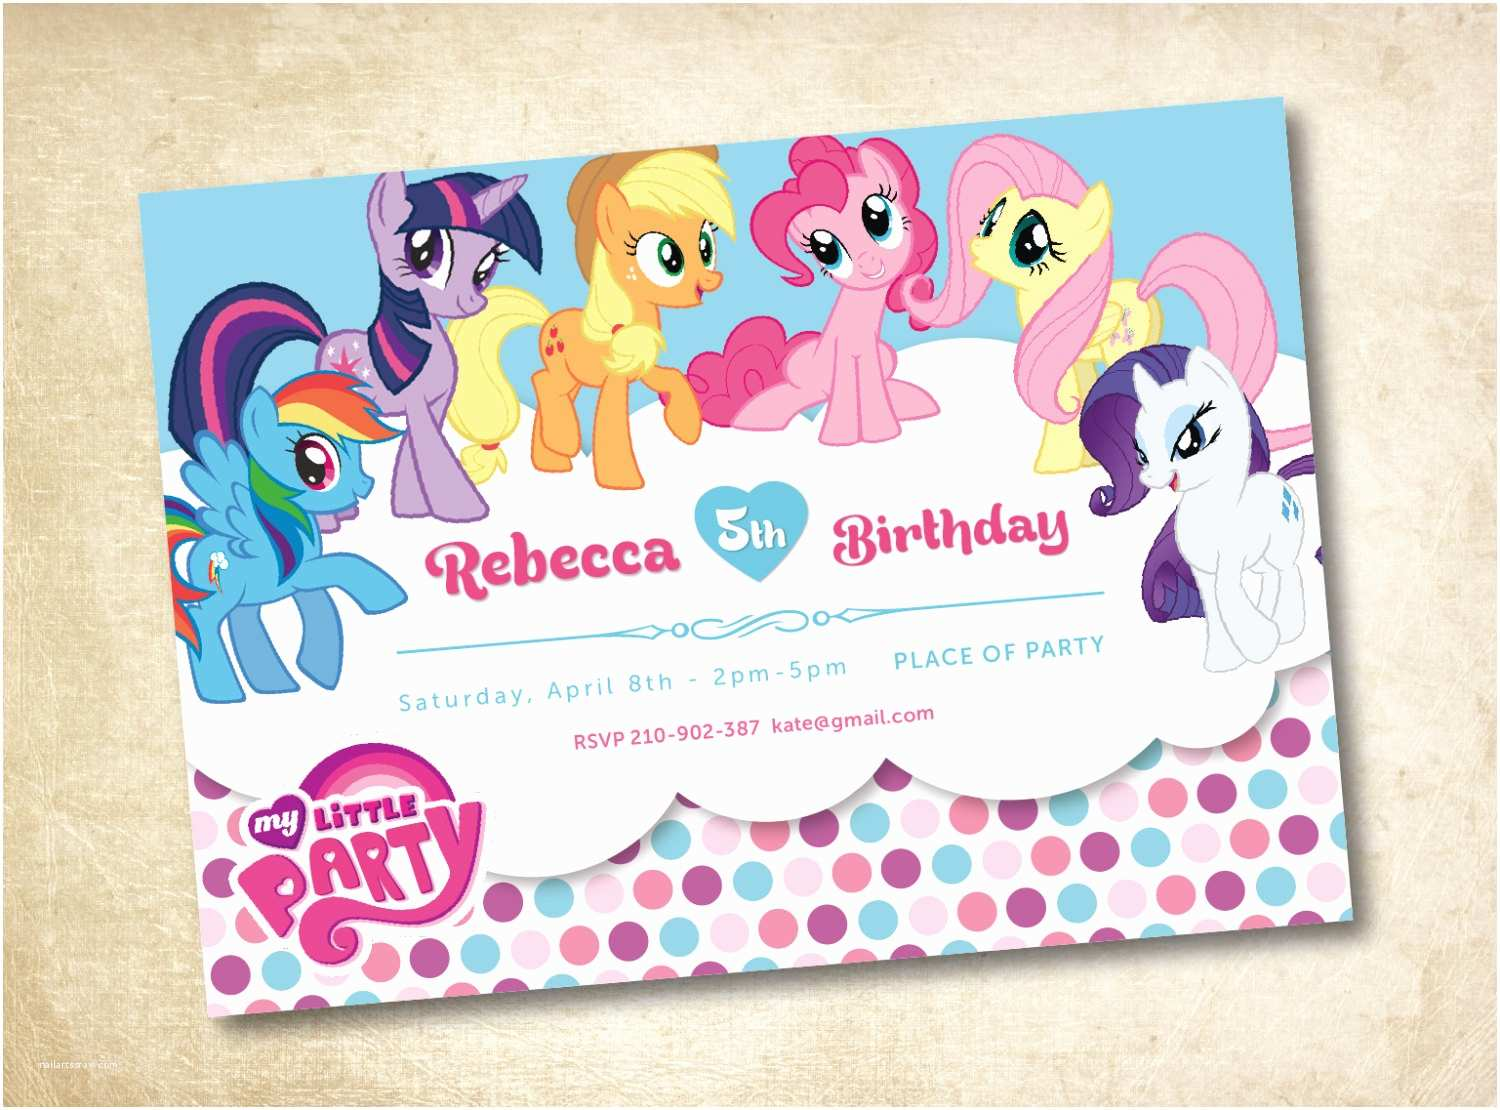 My Little Pony Party Invitations Create My Little Pony Birthday Party Invitations Free